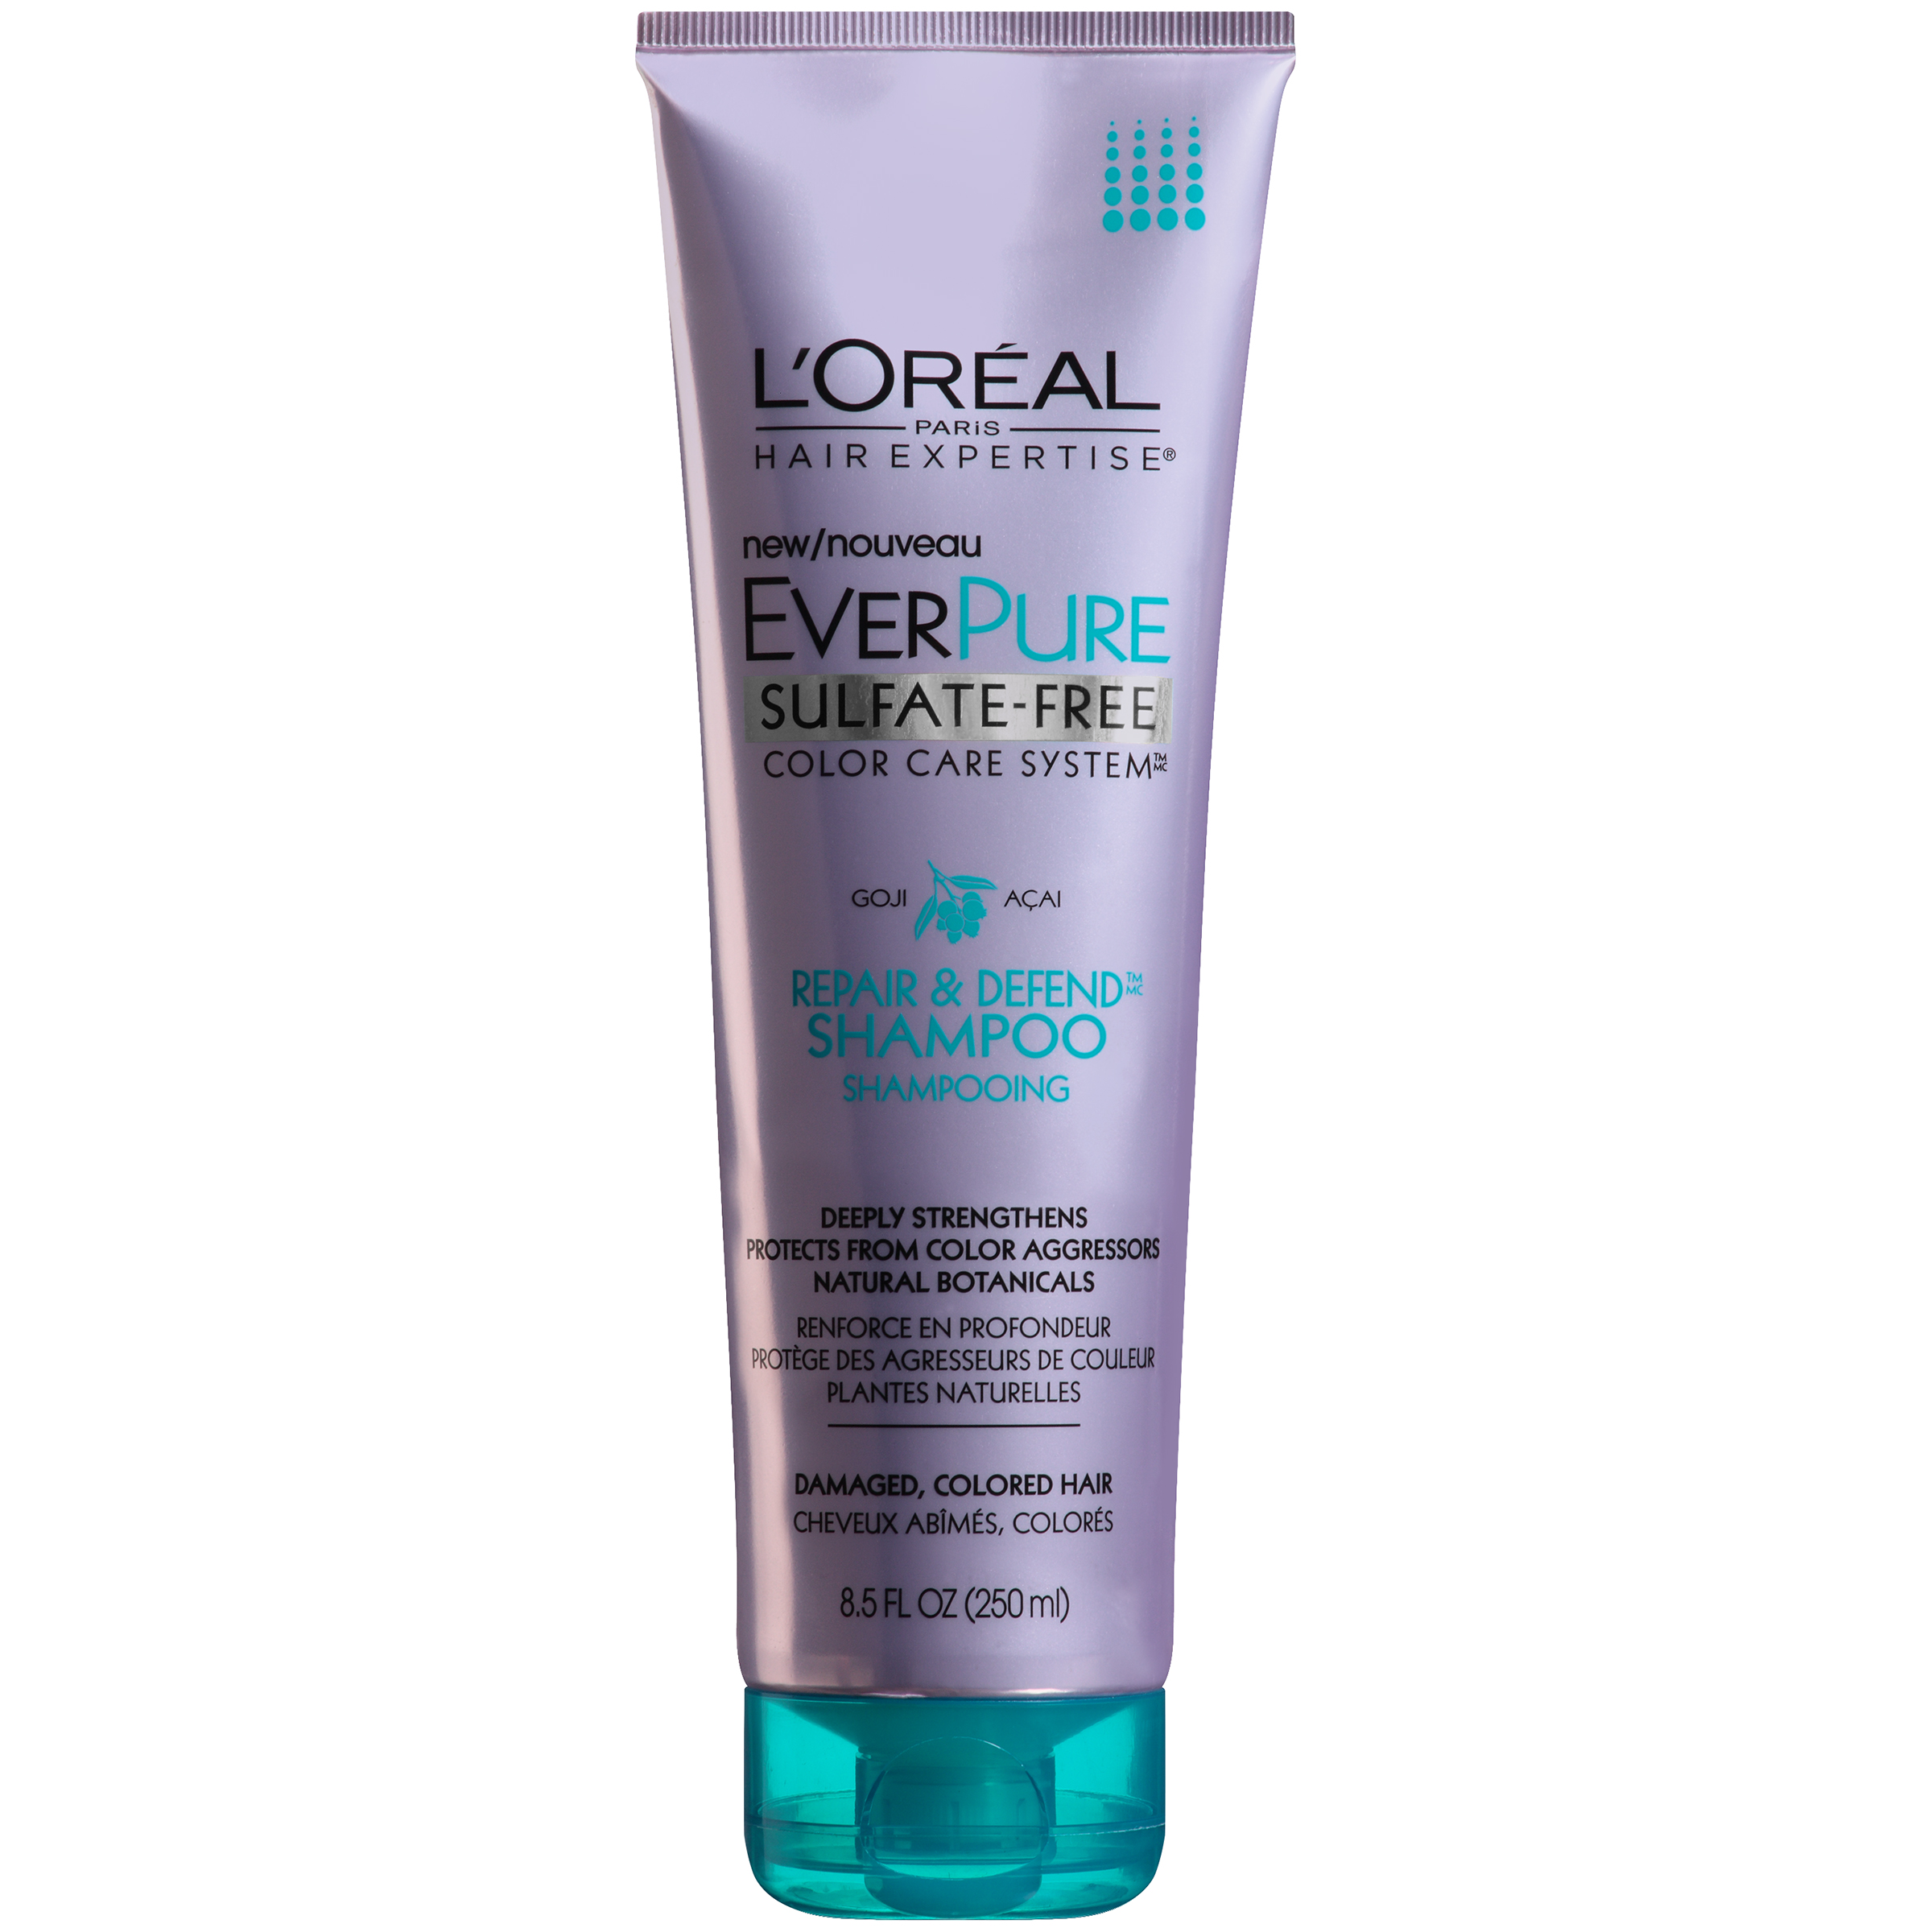 20 Loreal Everpure Shampoo And Conditioner Walmart Pictures And